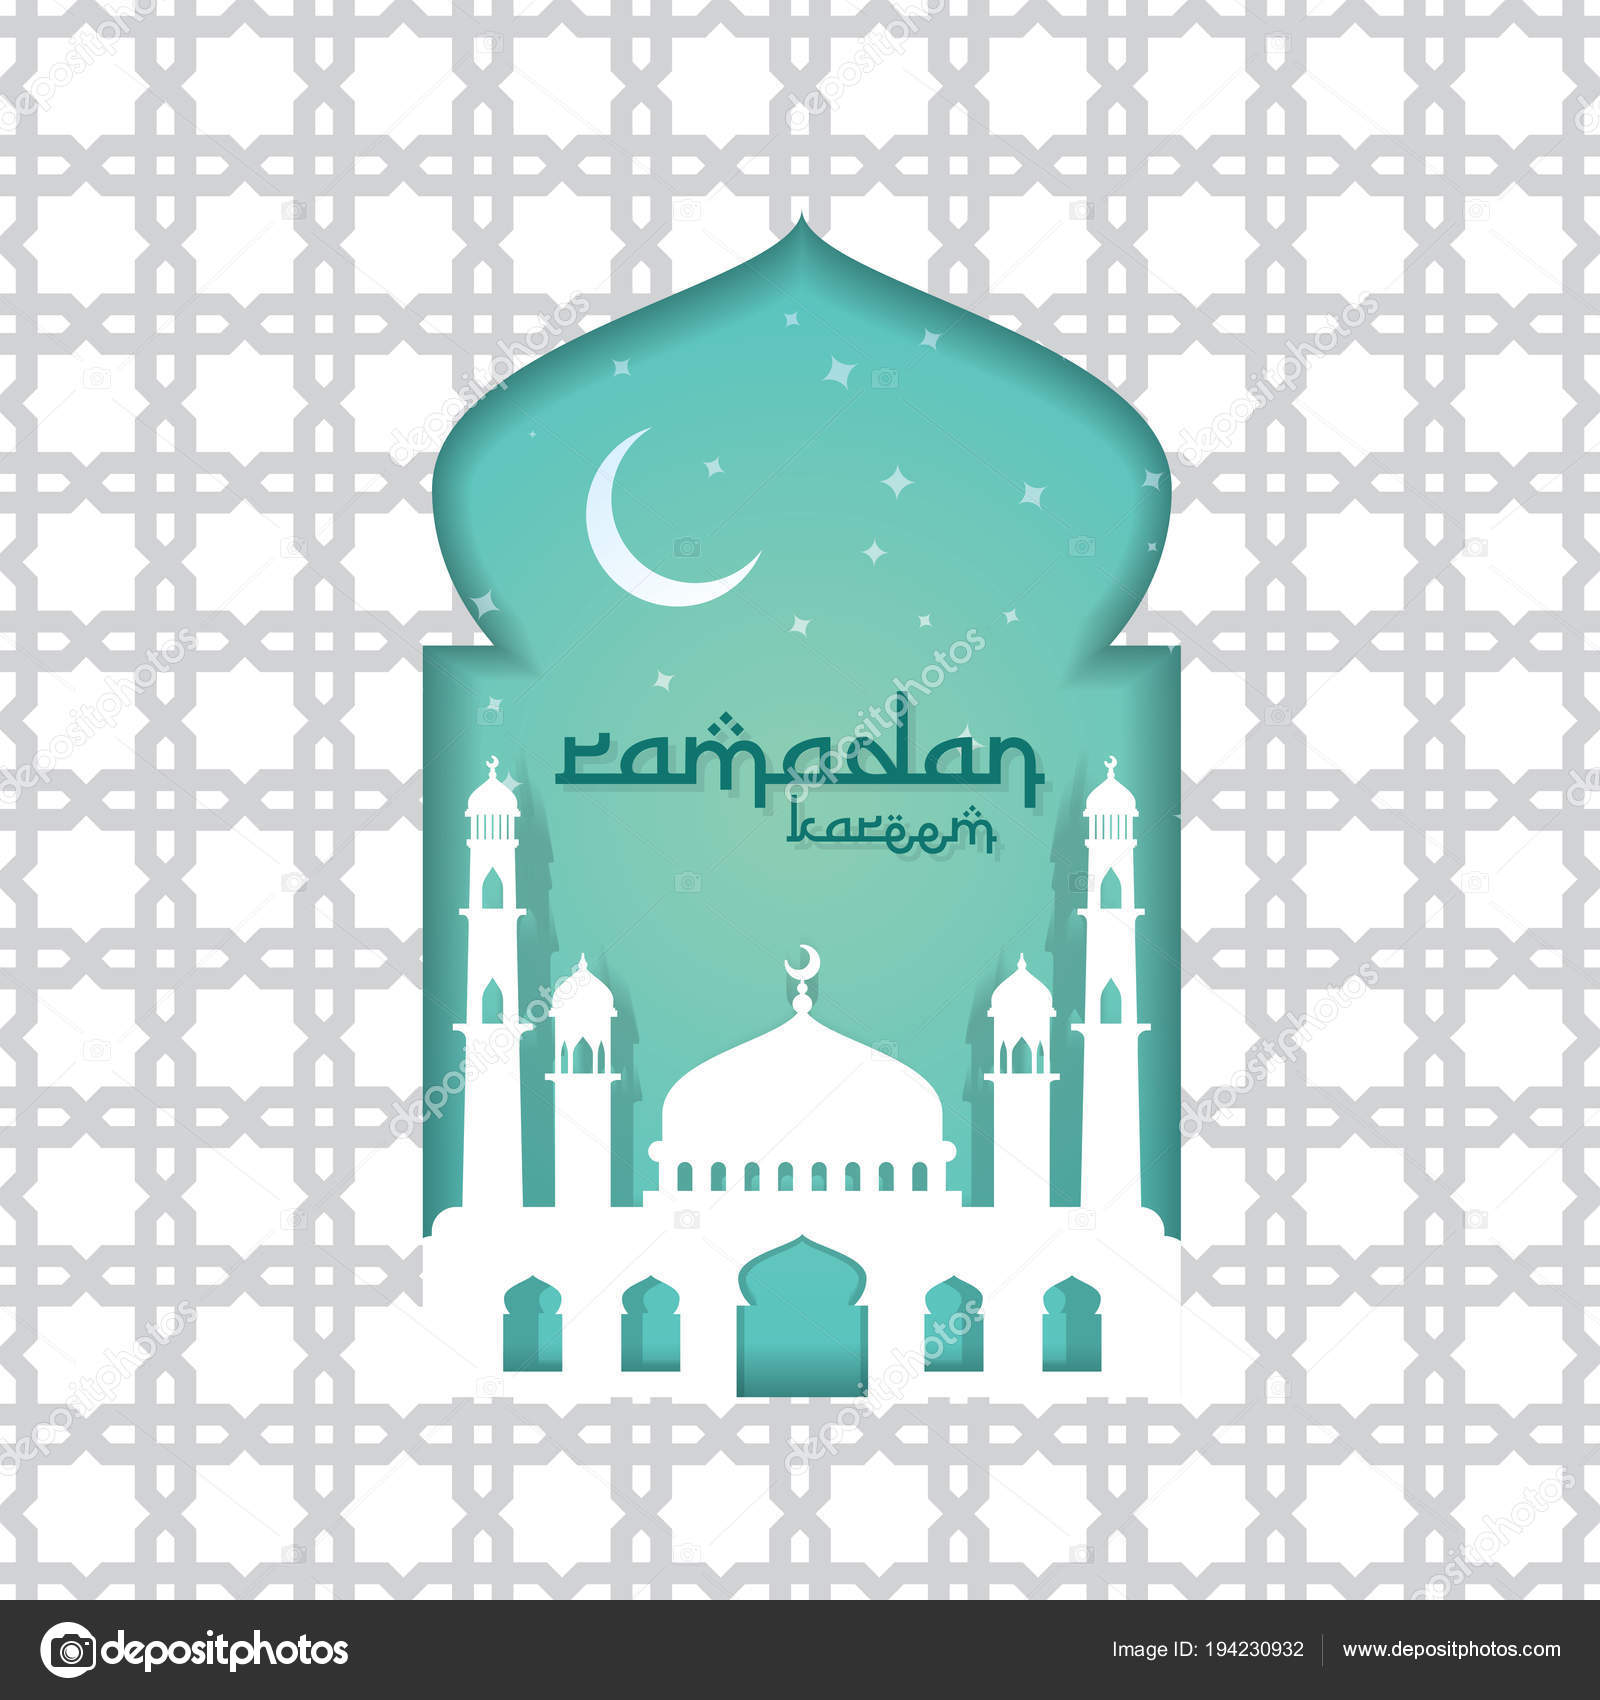 Ramadan Kareem islamic greeting card design with 3D dome mosque door or window and pattern element. paper cut background style. Vector illustration ...  sc 1 st  Depositphotos & Ramadan Kareem islamic greeting card design with 3D dome mosque ...